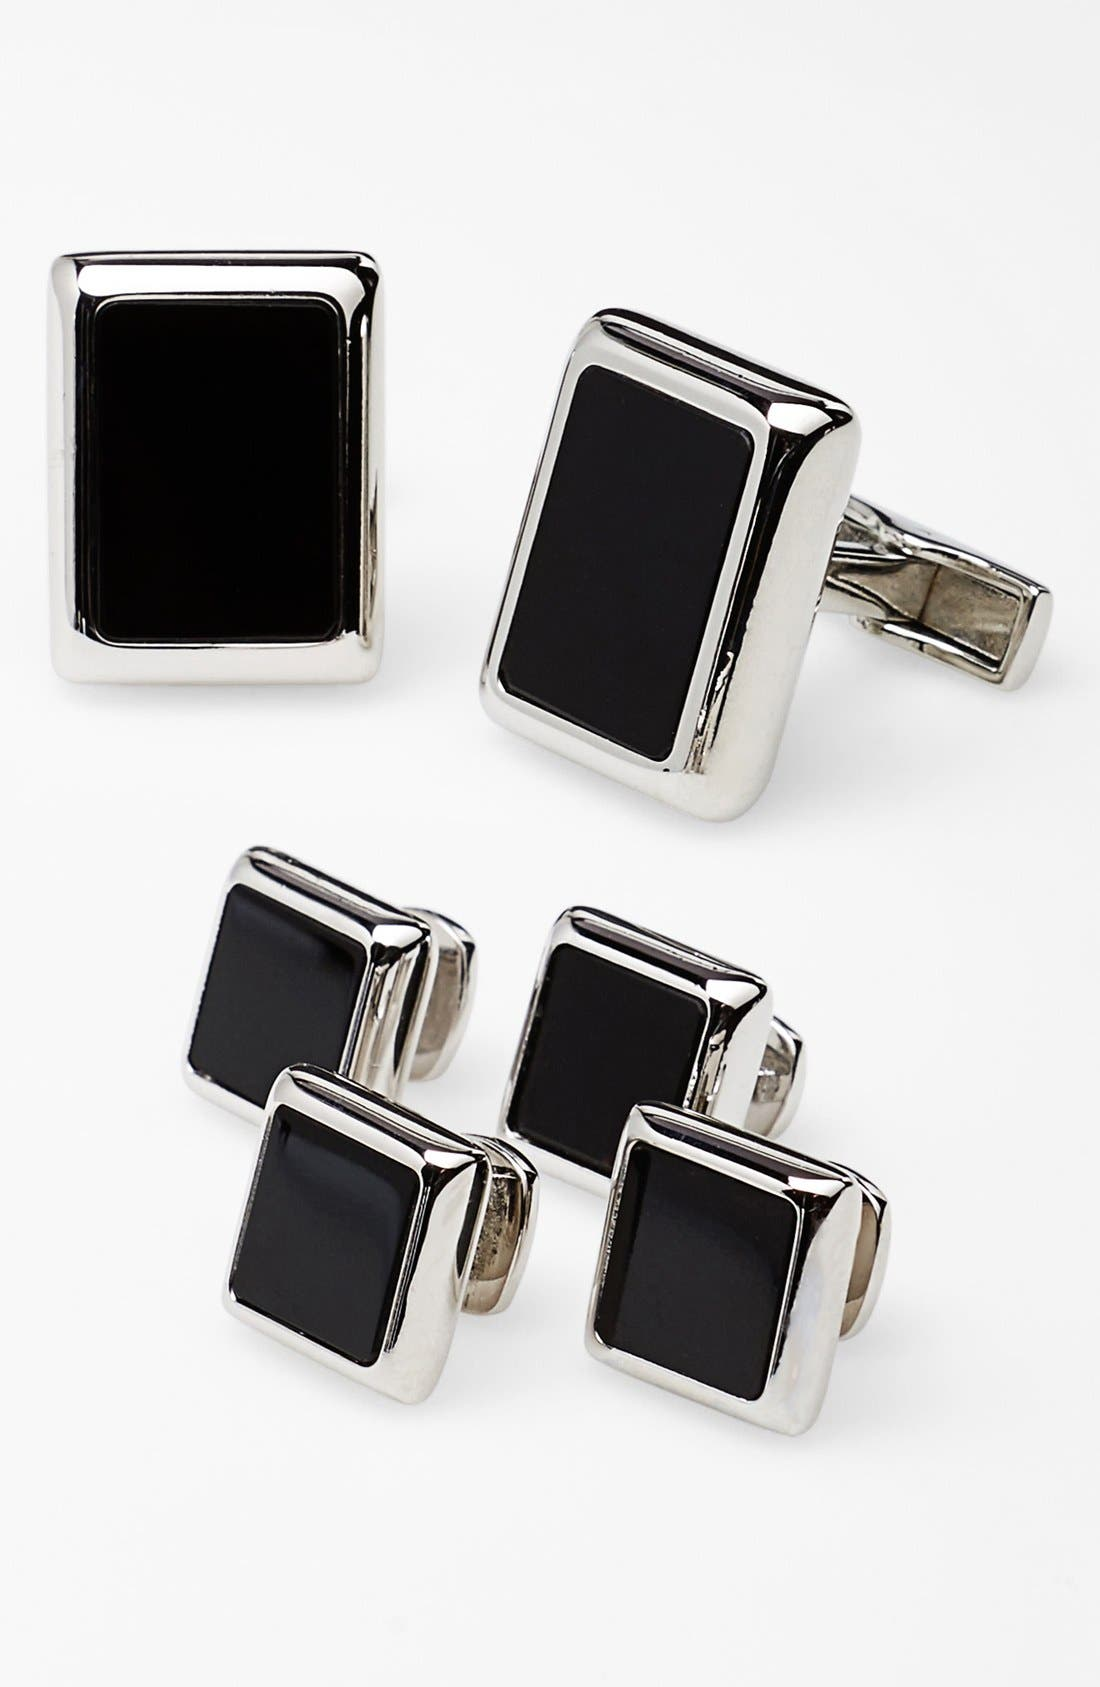 Main Image - Ox and Bull Trading Co. 'JFK Presidential' Shirt Studs & Cuff Links